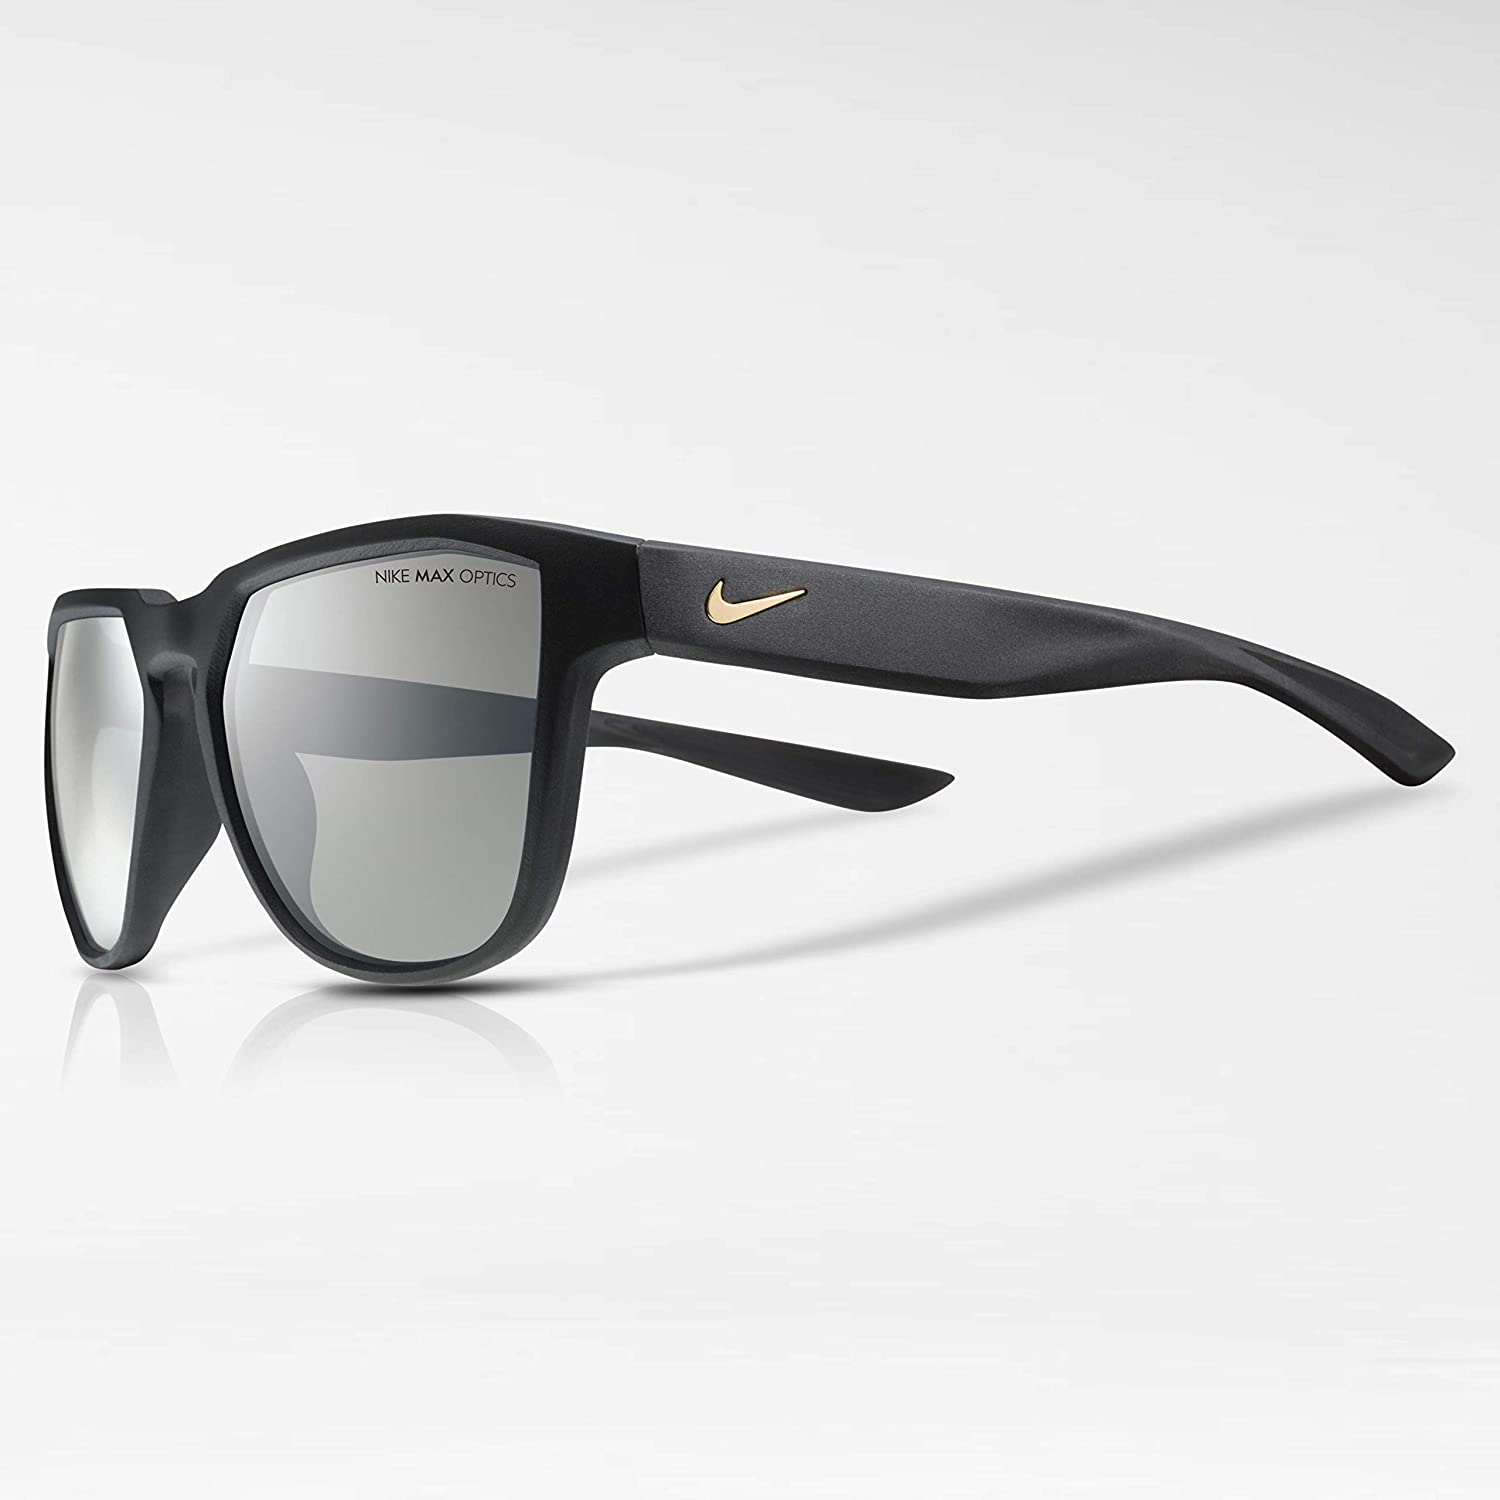 fbeb42c6475ad Nike Golf Men's Nike Fly Swift Rectangular Sunglasses, Matte Black/Gold  Frame, 57 mm